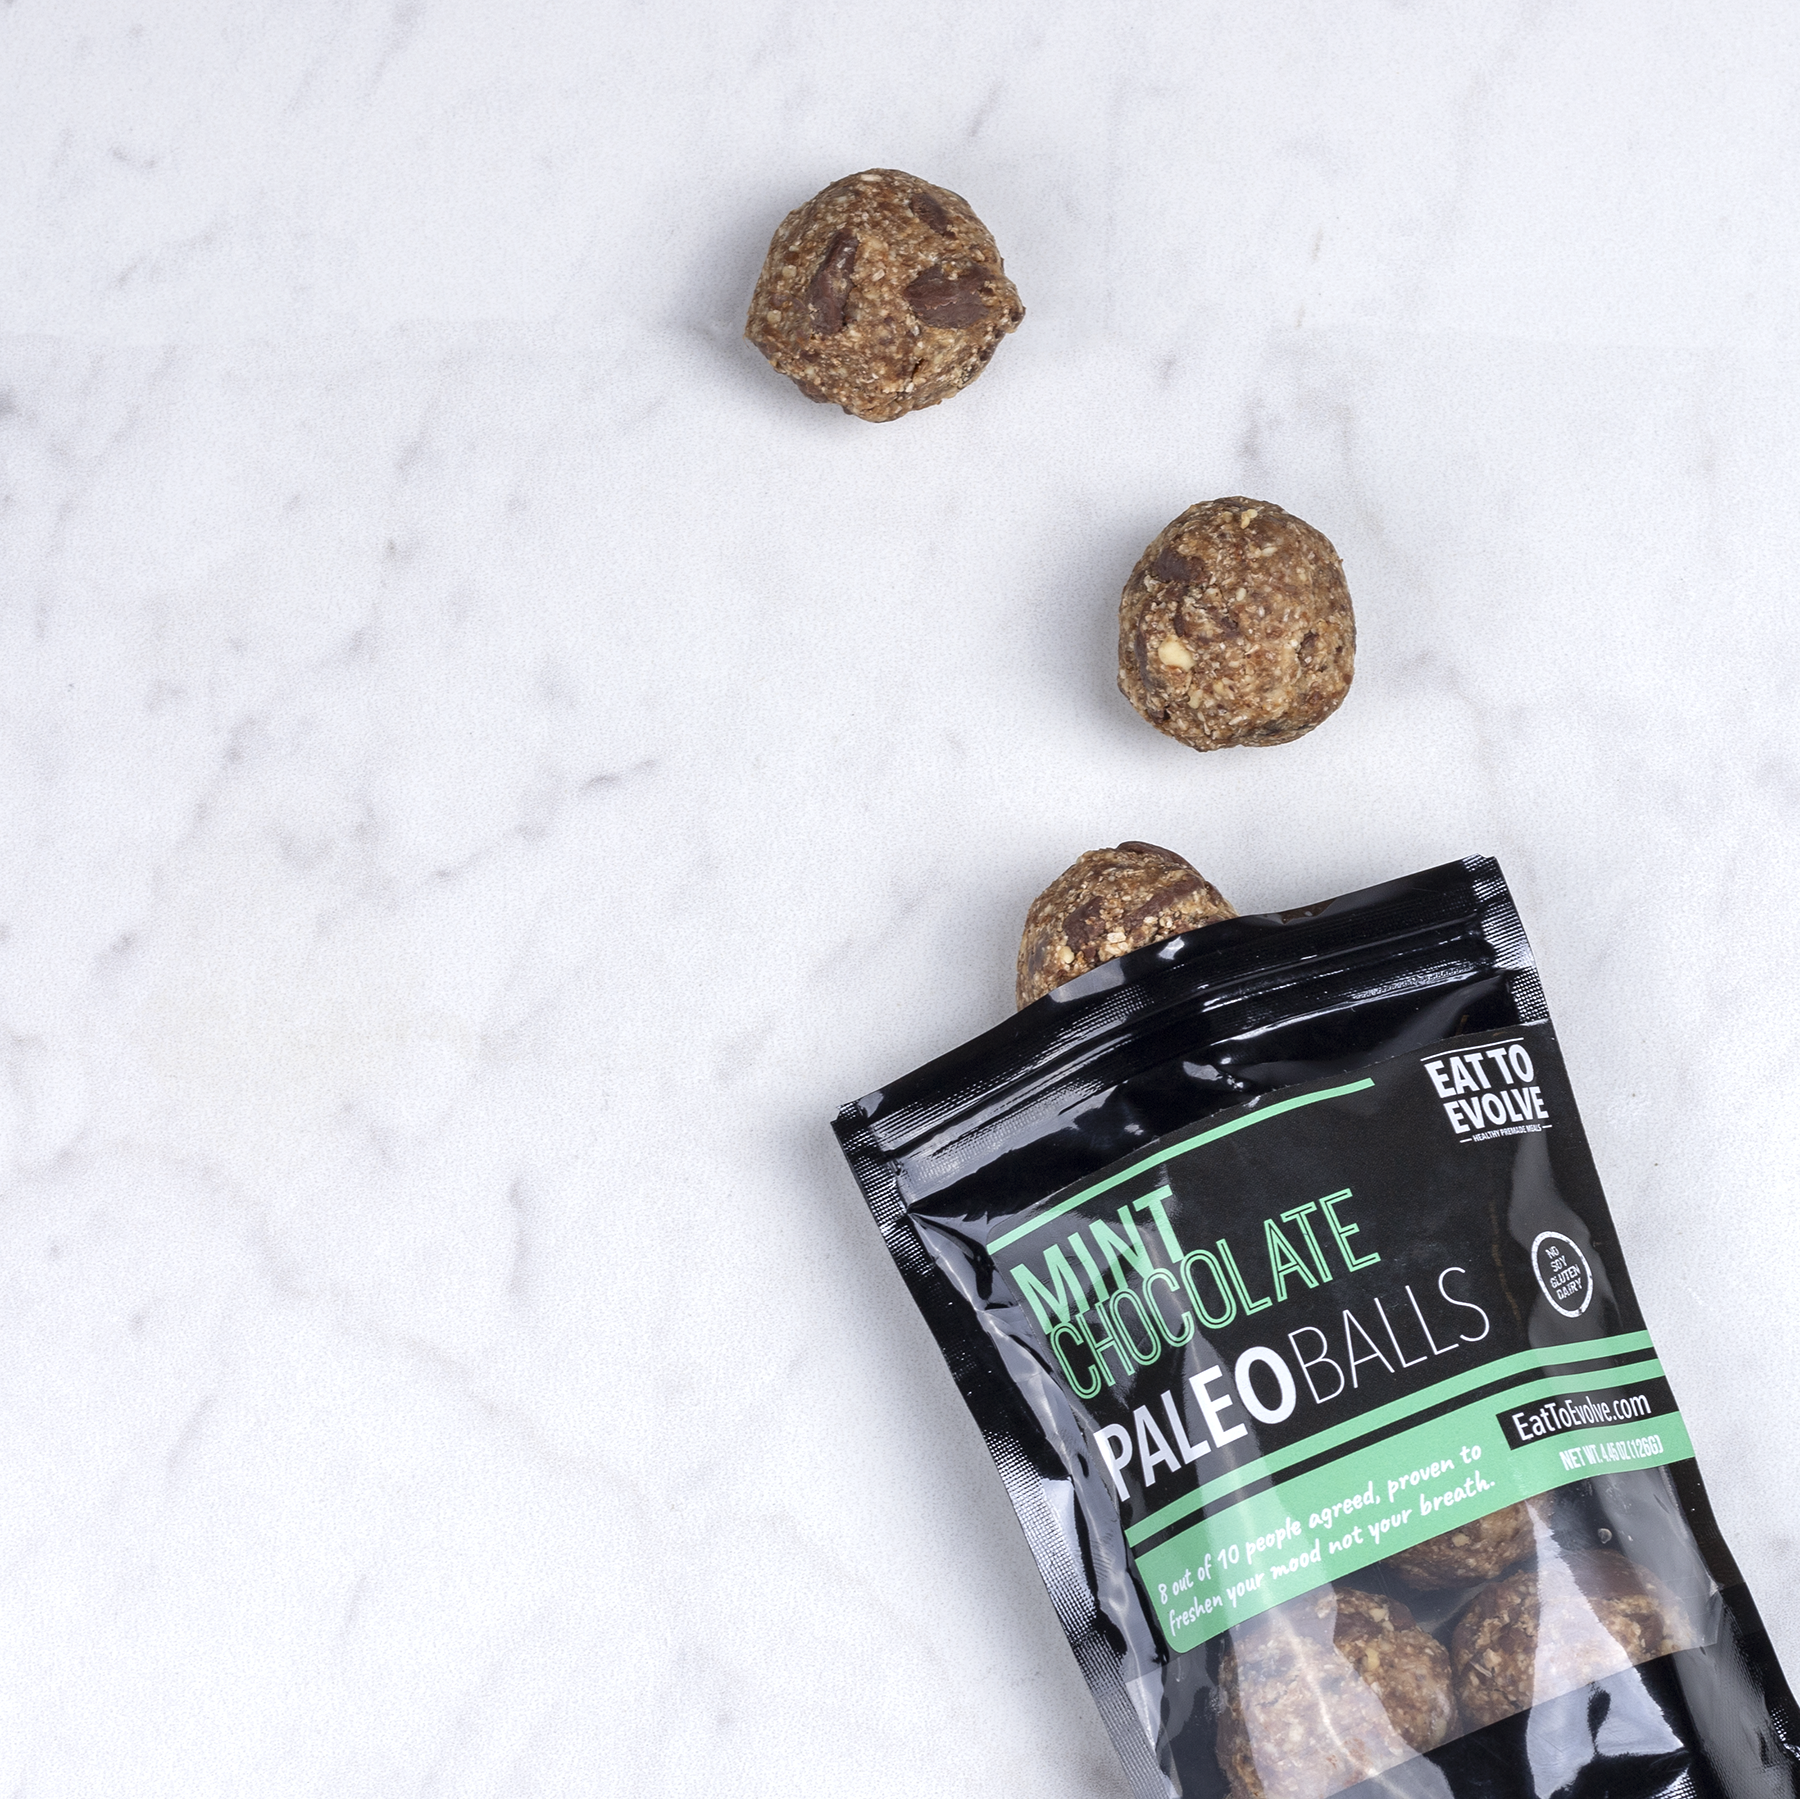 Mint Chocolate Paleo Balls, Six Pack